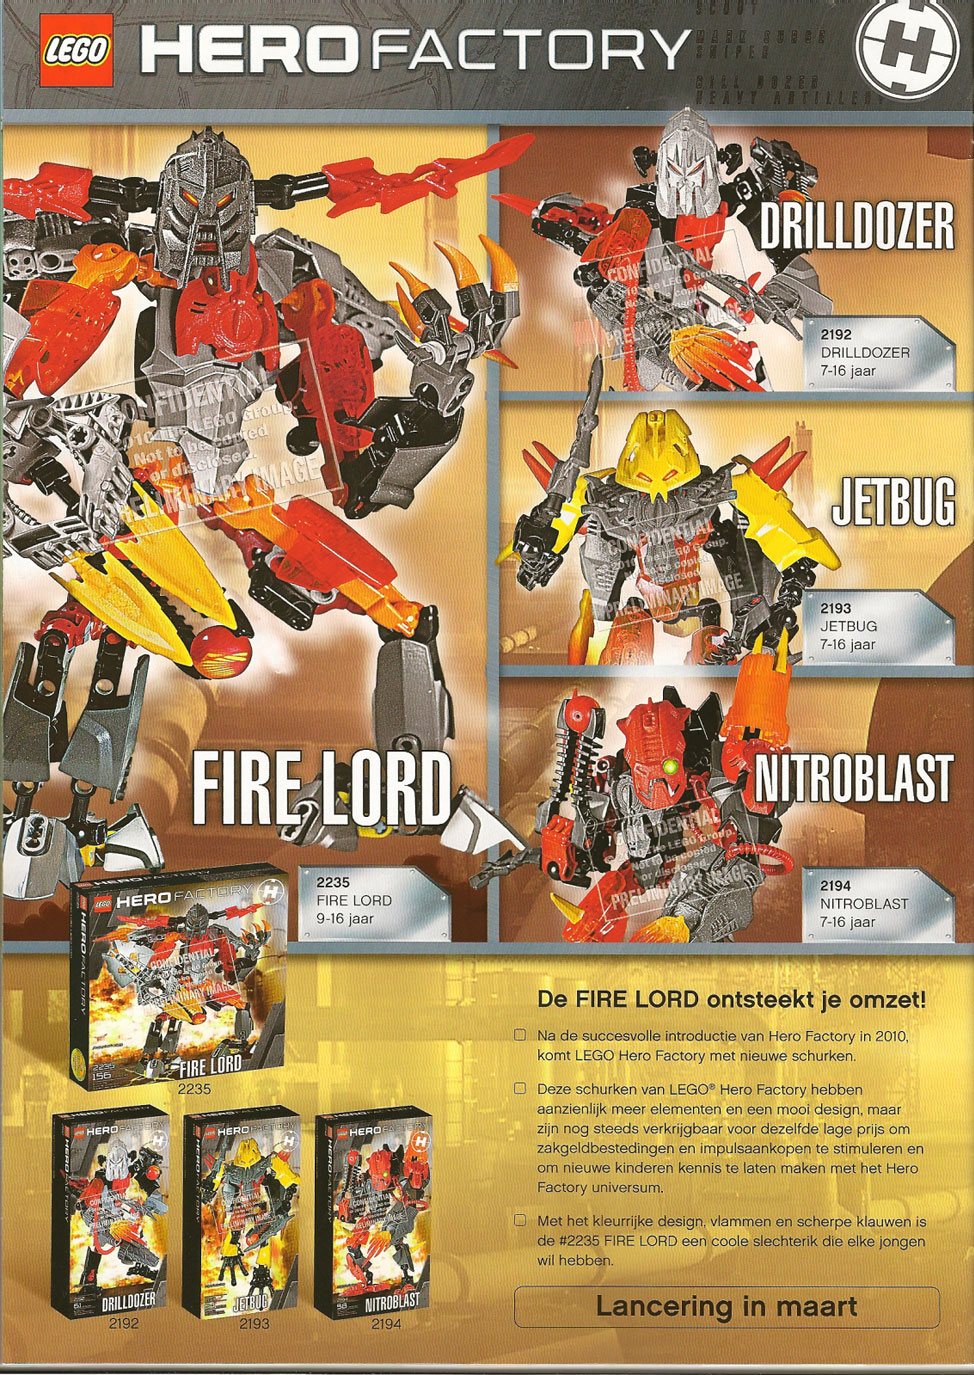 lego hero factory nitroblast instructions